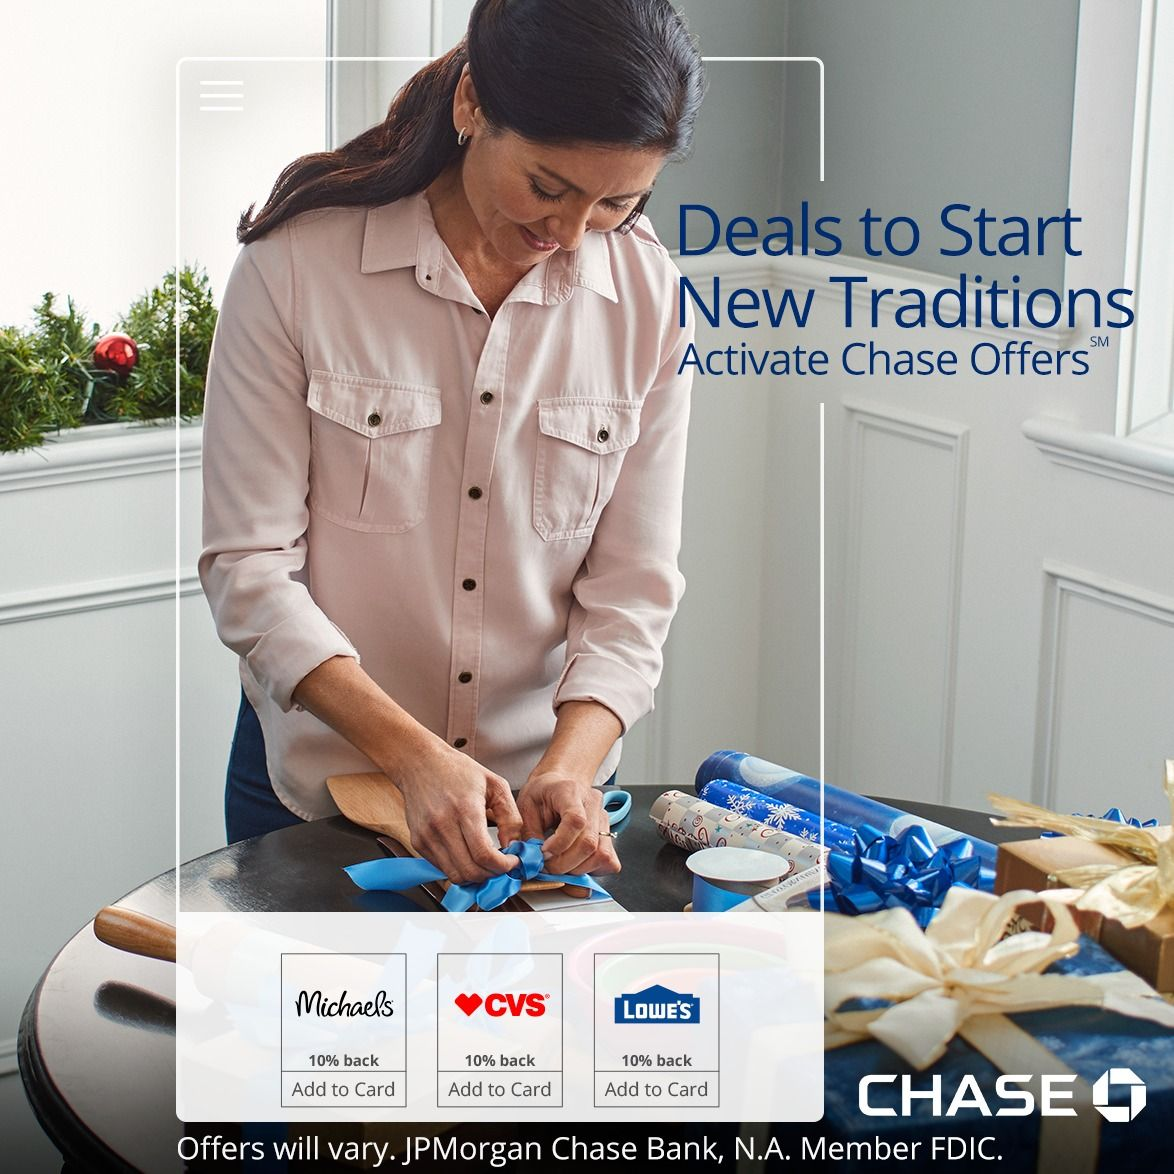 Activate chase offers online or in the chase mobile app